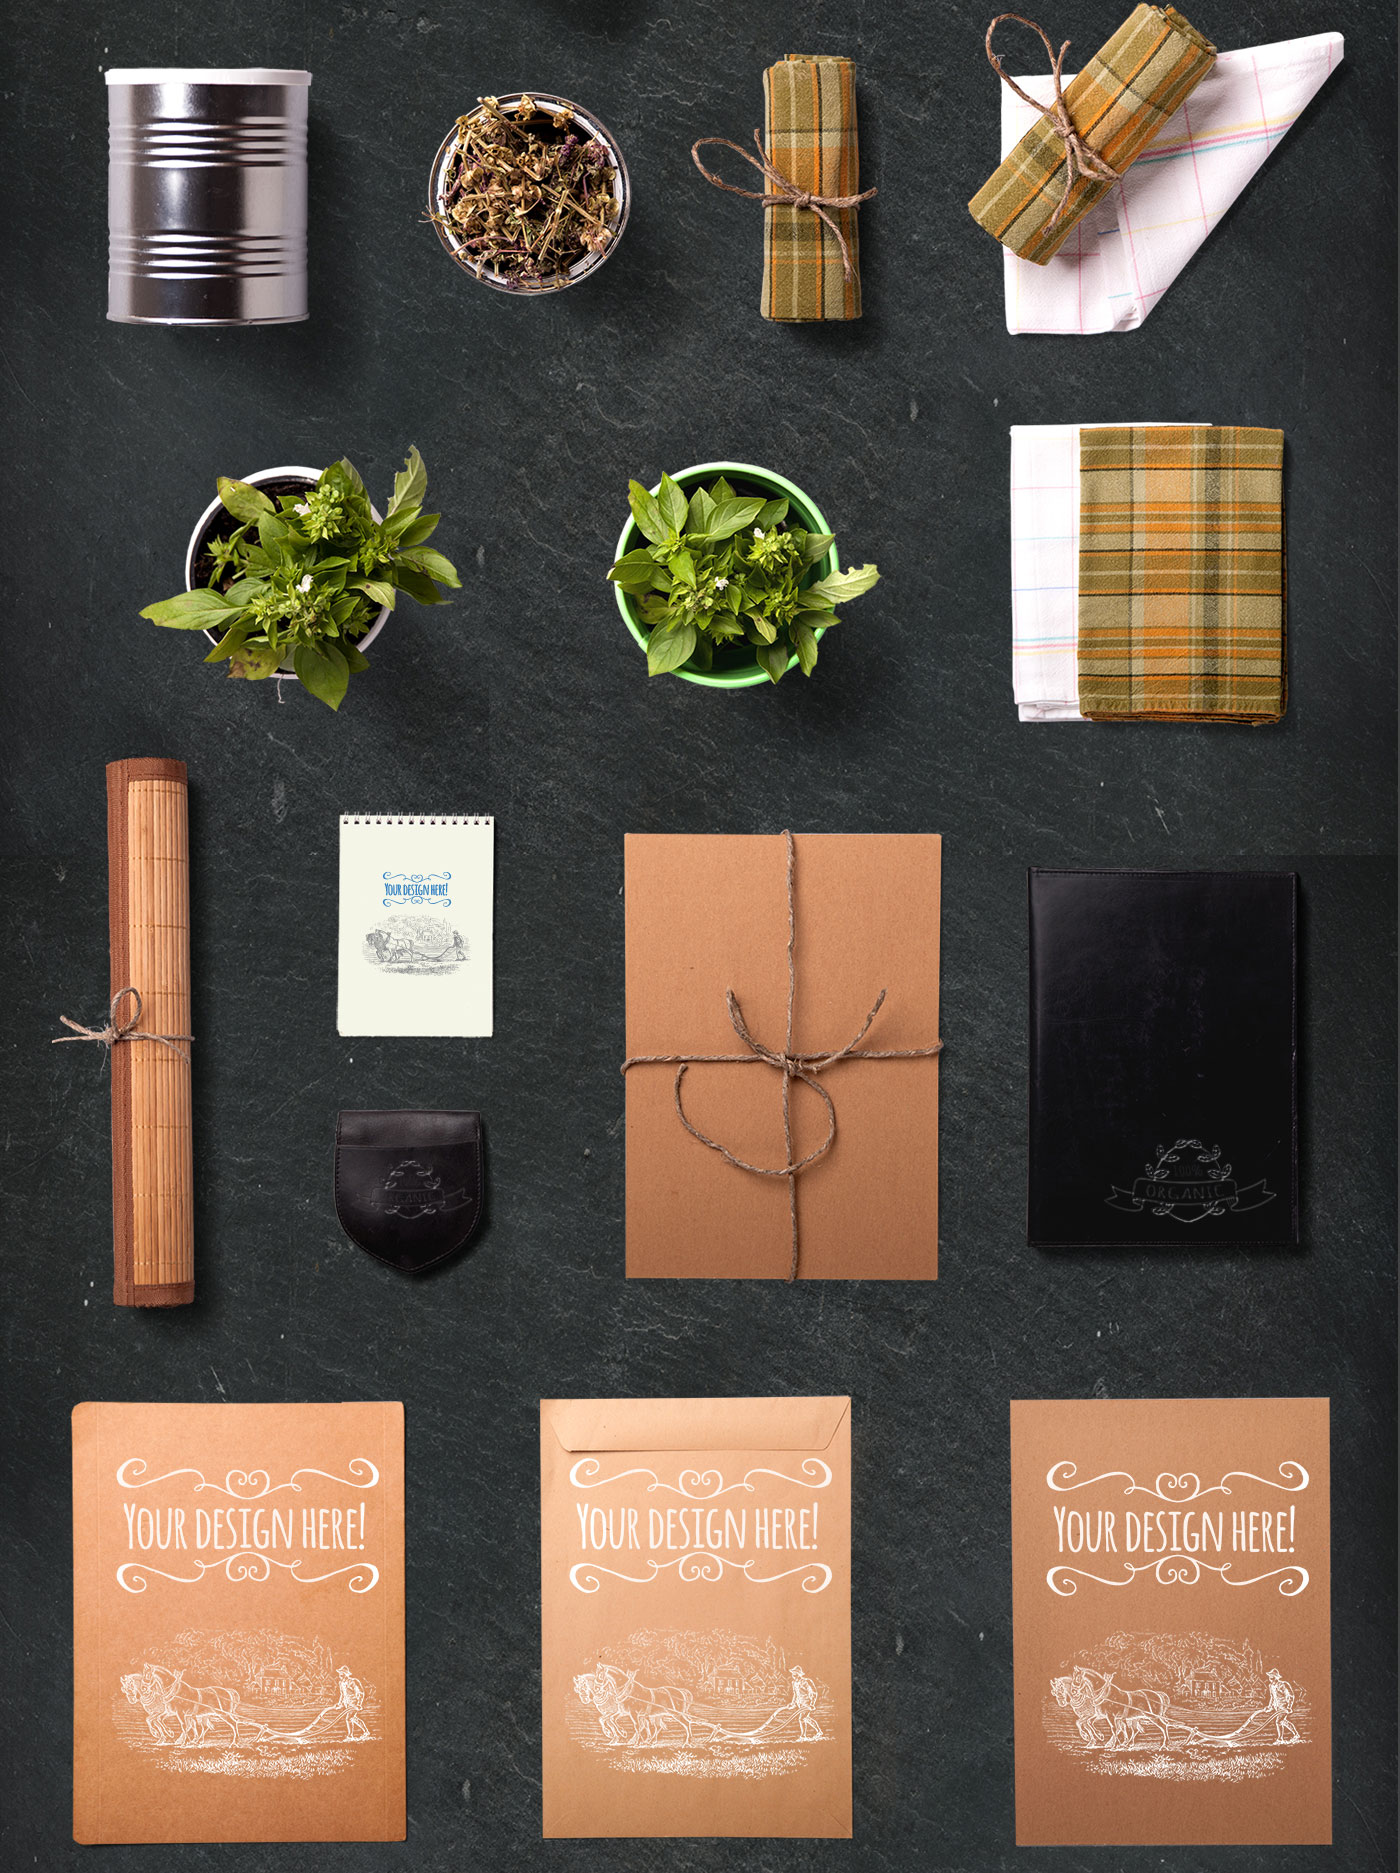 Branding material and spices